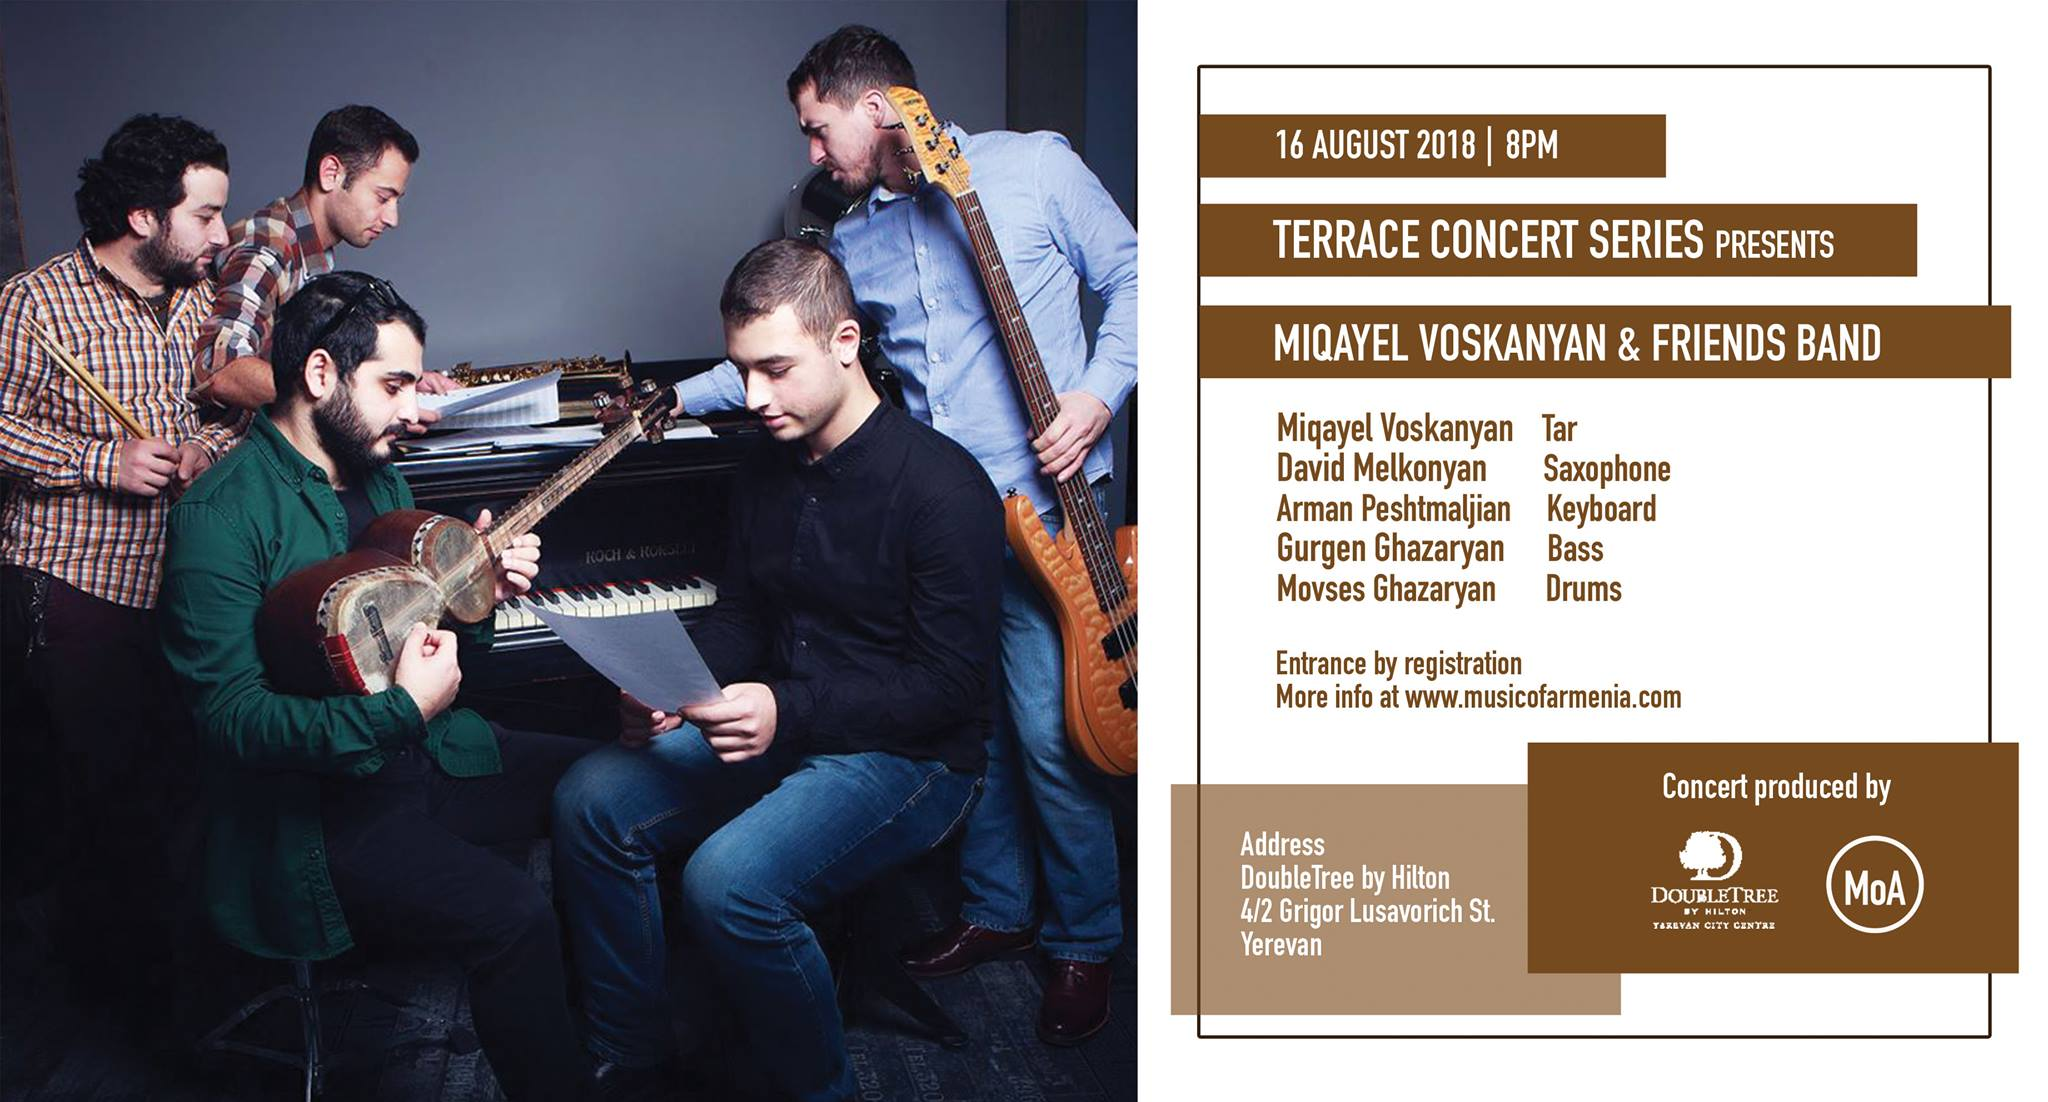 Miqayel Voskanyan & Friends Band